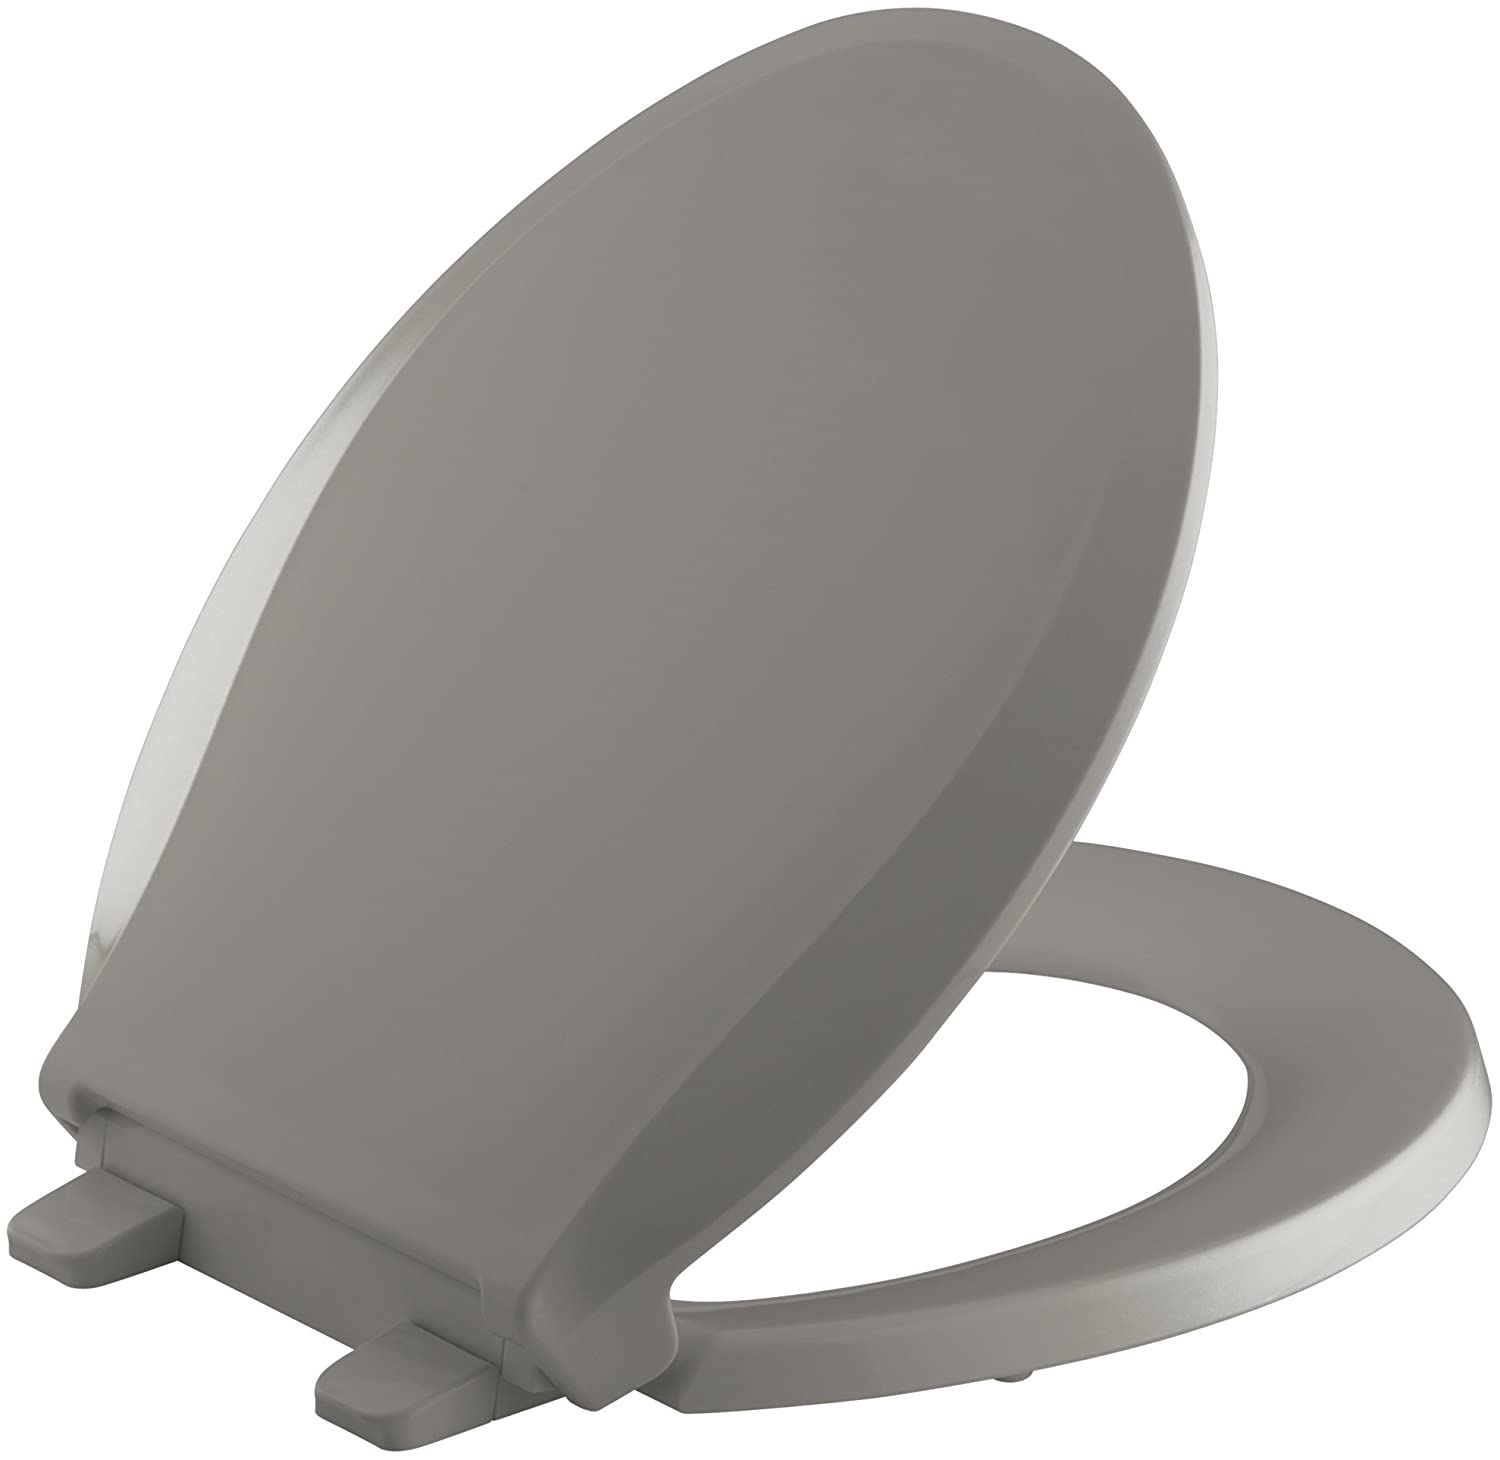 KOHLER K 4639 95 Cachet Quiet Close with Grip Tight Bumpers Round front Toilet  Seat  Ice Grey     Amazon comKOHLER K 4639 95 Cachet Quiet Close with Grip Tight Bumpers Round  . Dark Grey Toilet Seat. Home Design Ideas